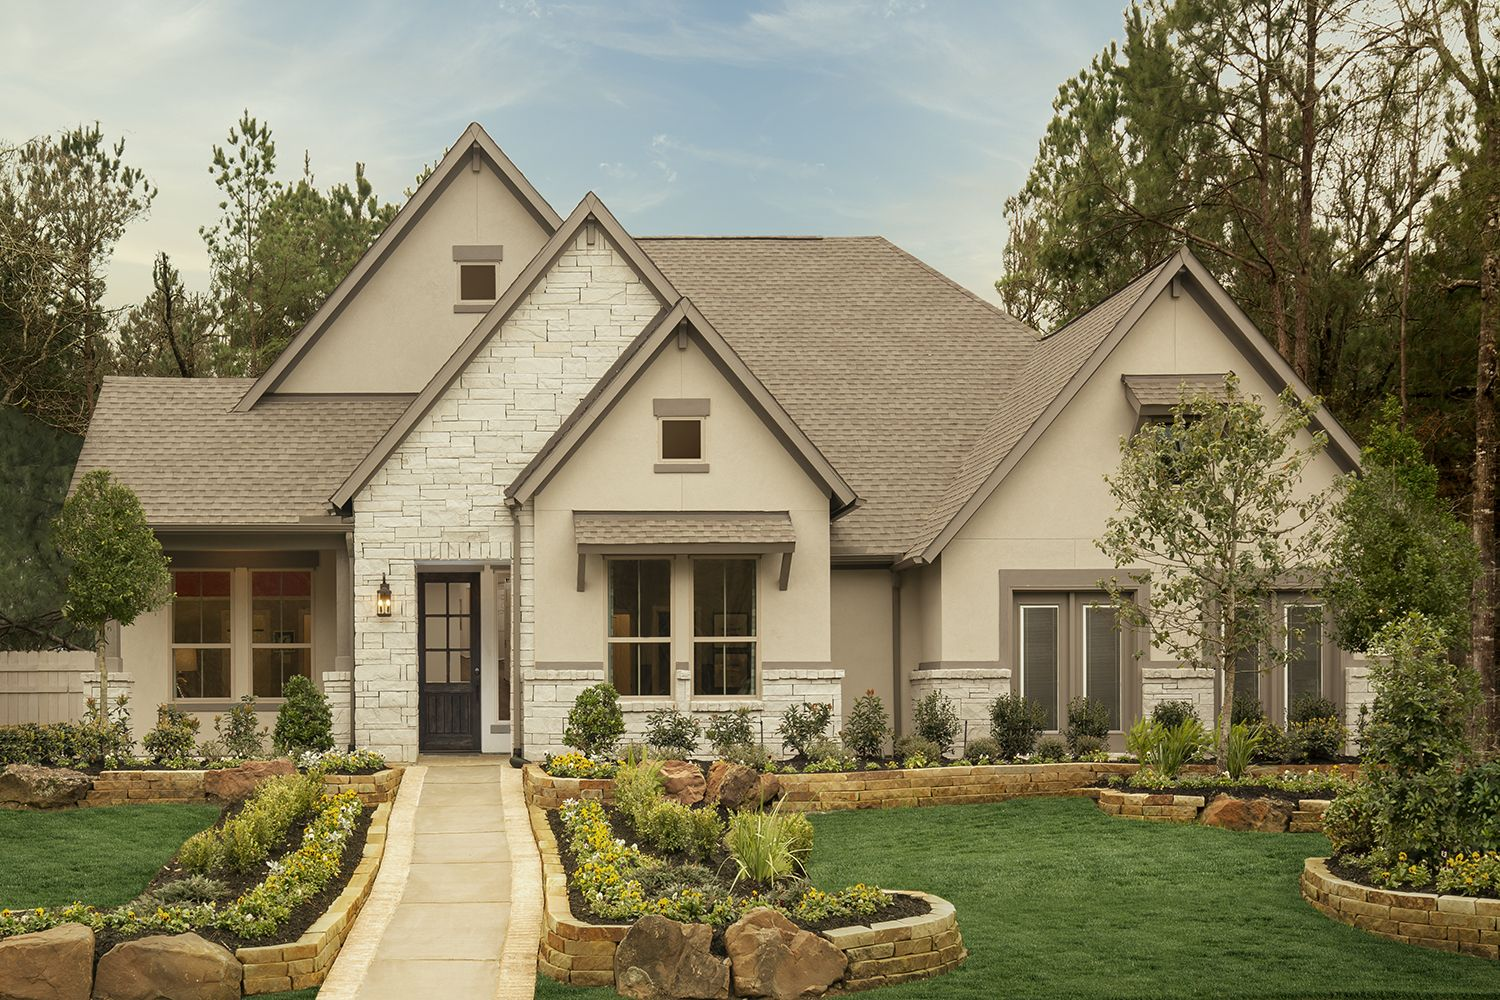 Exterior Elevation With Brick Stone And Stucco Coventry Homes Architecture House Styles